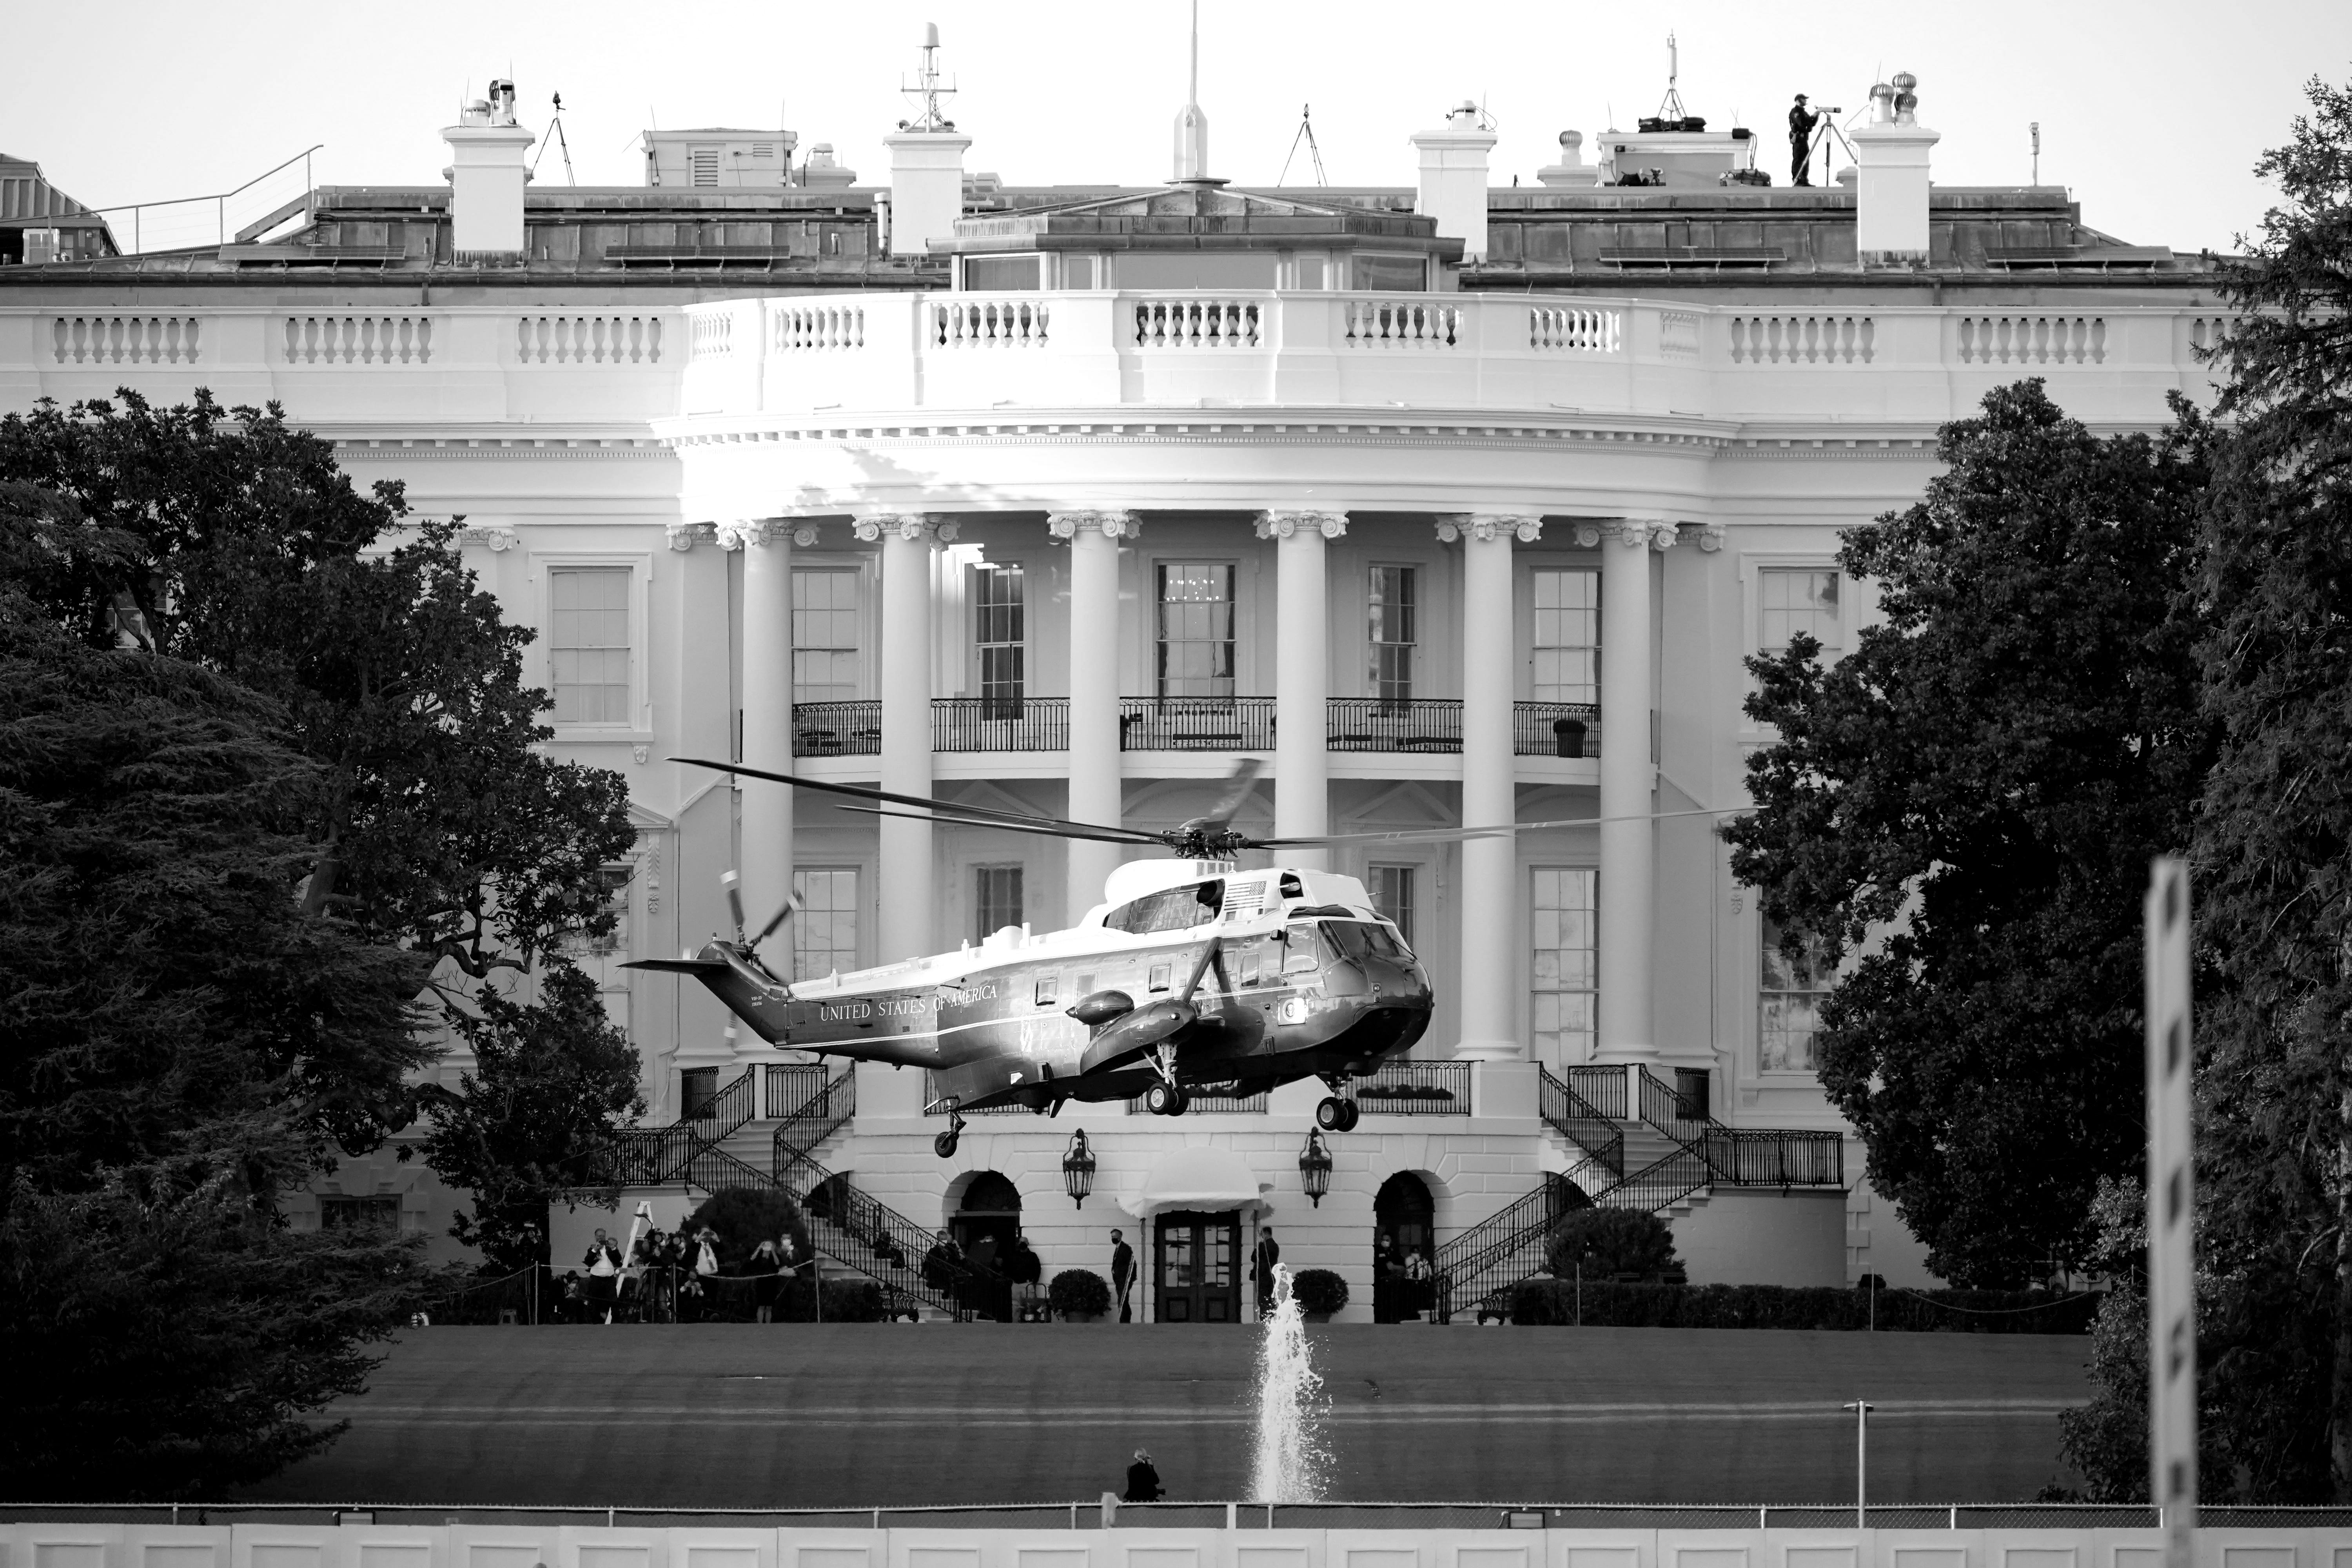 Marine One lifts off from the White House to carry President Donald Trump to Walter Reed National Military Medical Center in Bethesda, Md., Friday, Oct. 2, 2020 in Washington.